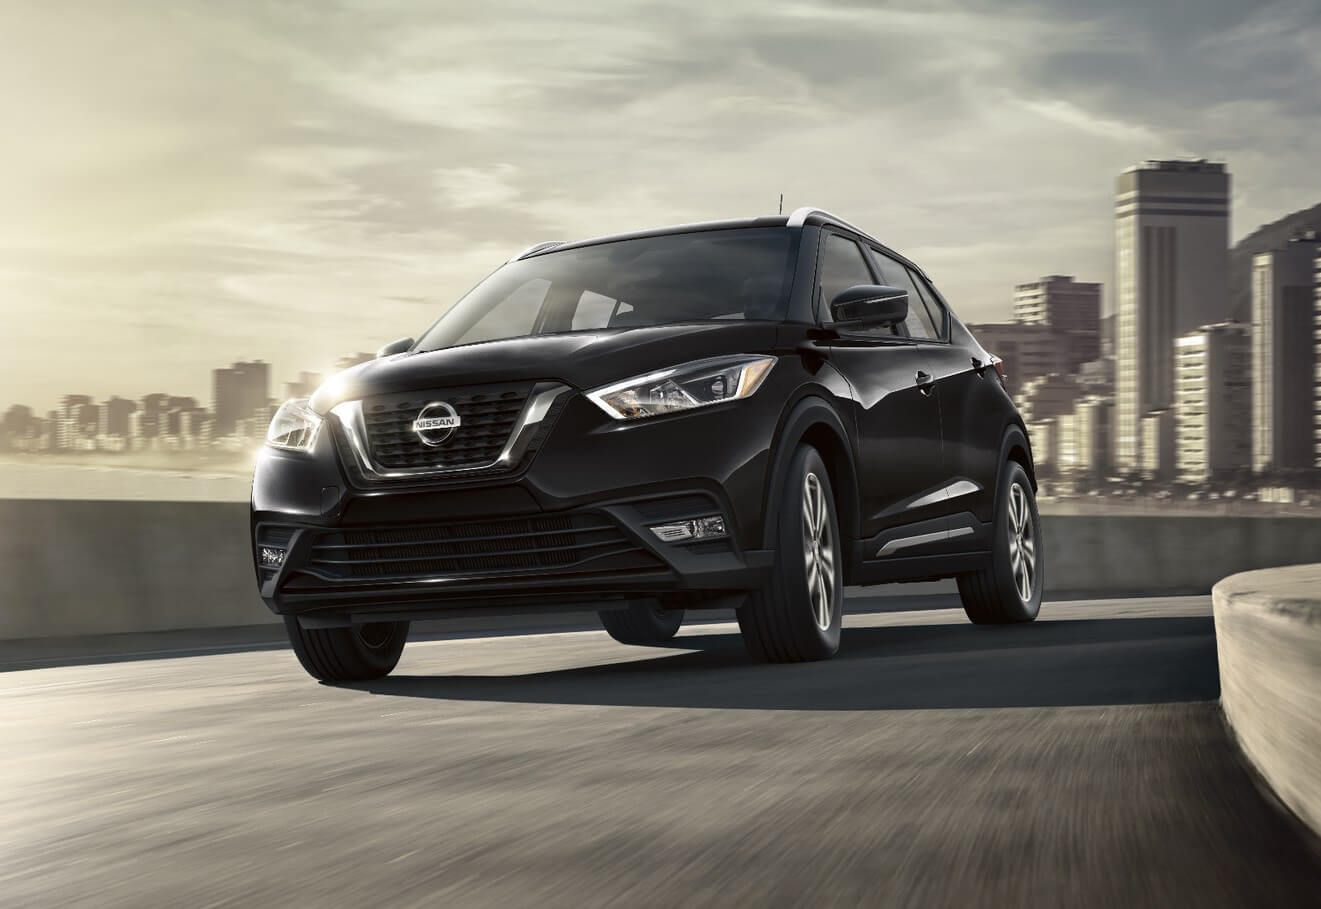 2020 Nissan Kicks Engine MPG